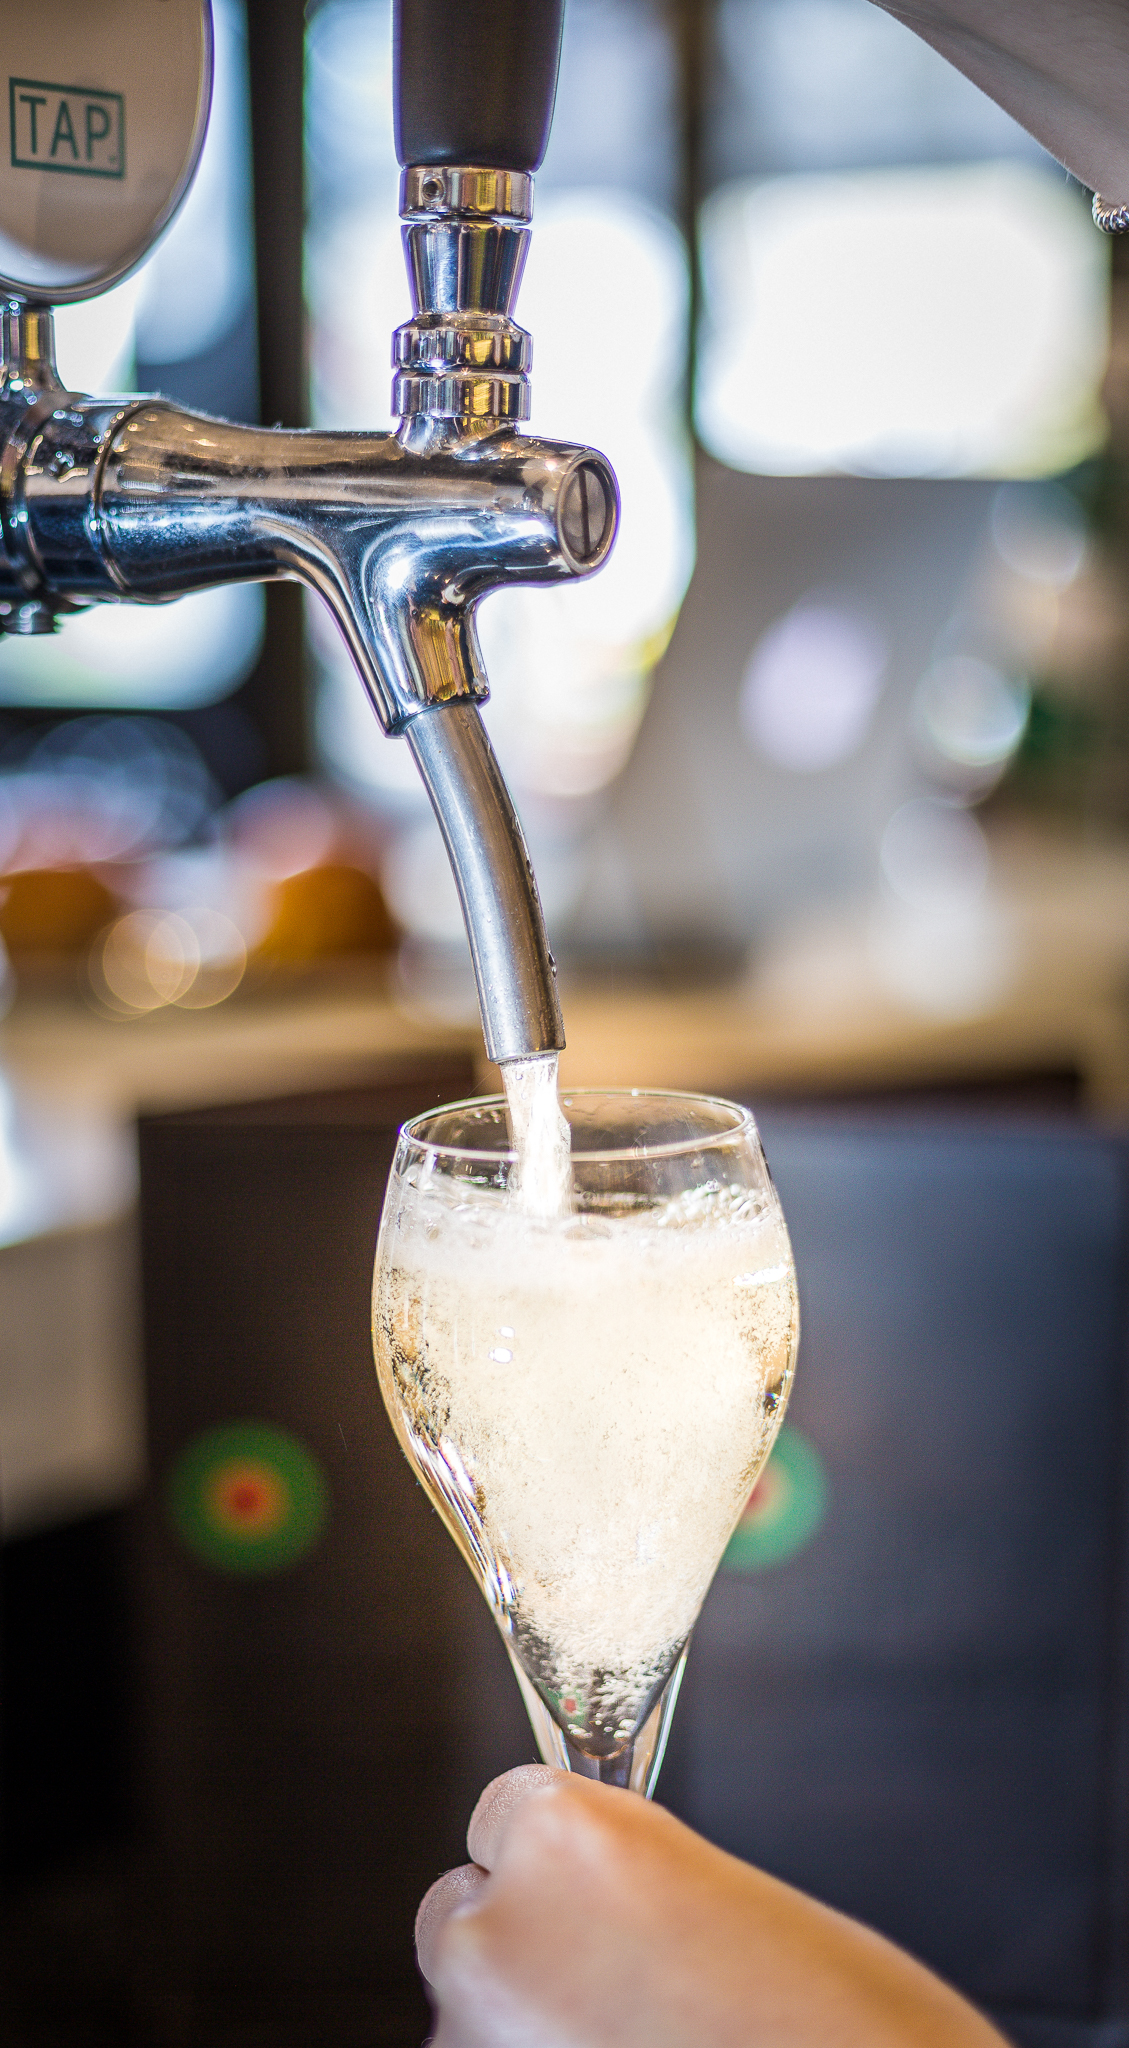 TAP. Sparkling Extra Dry